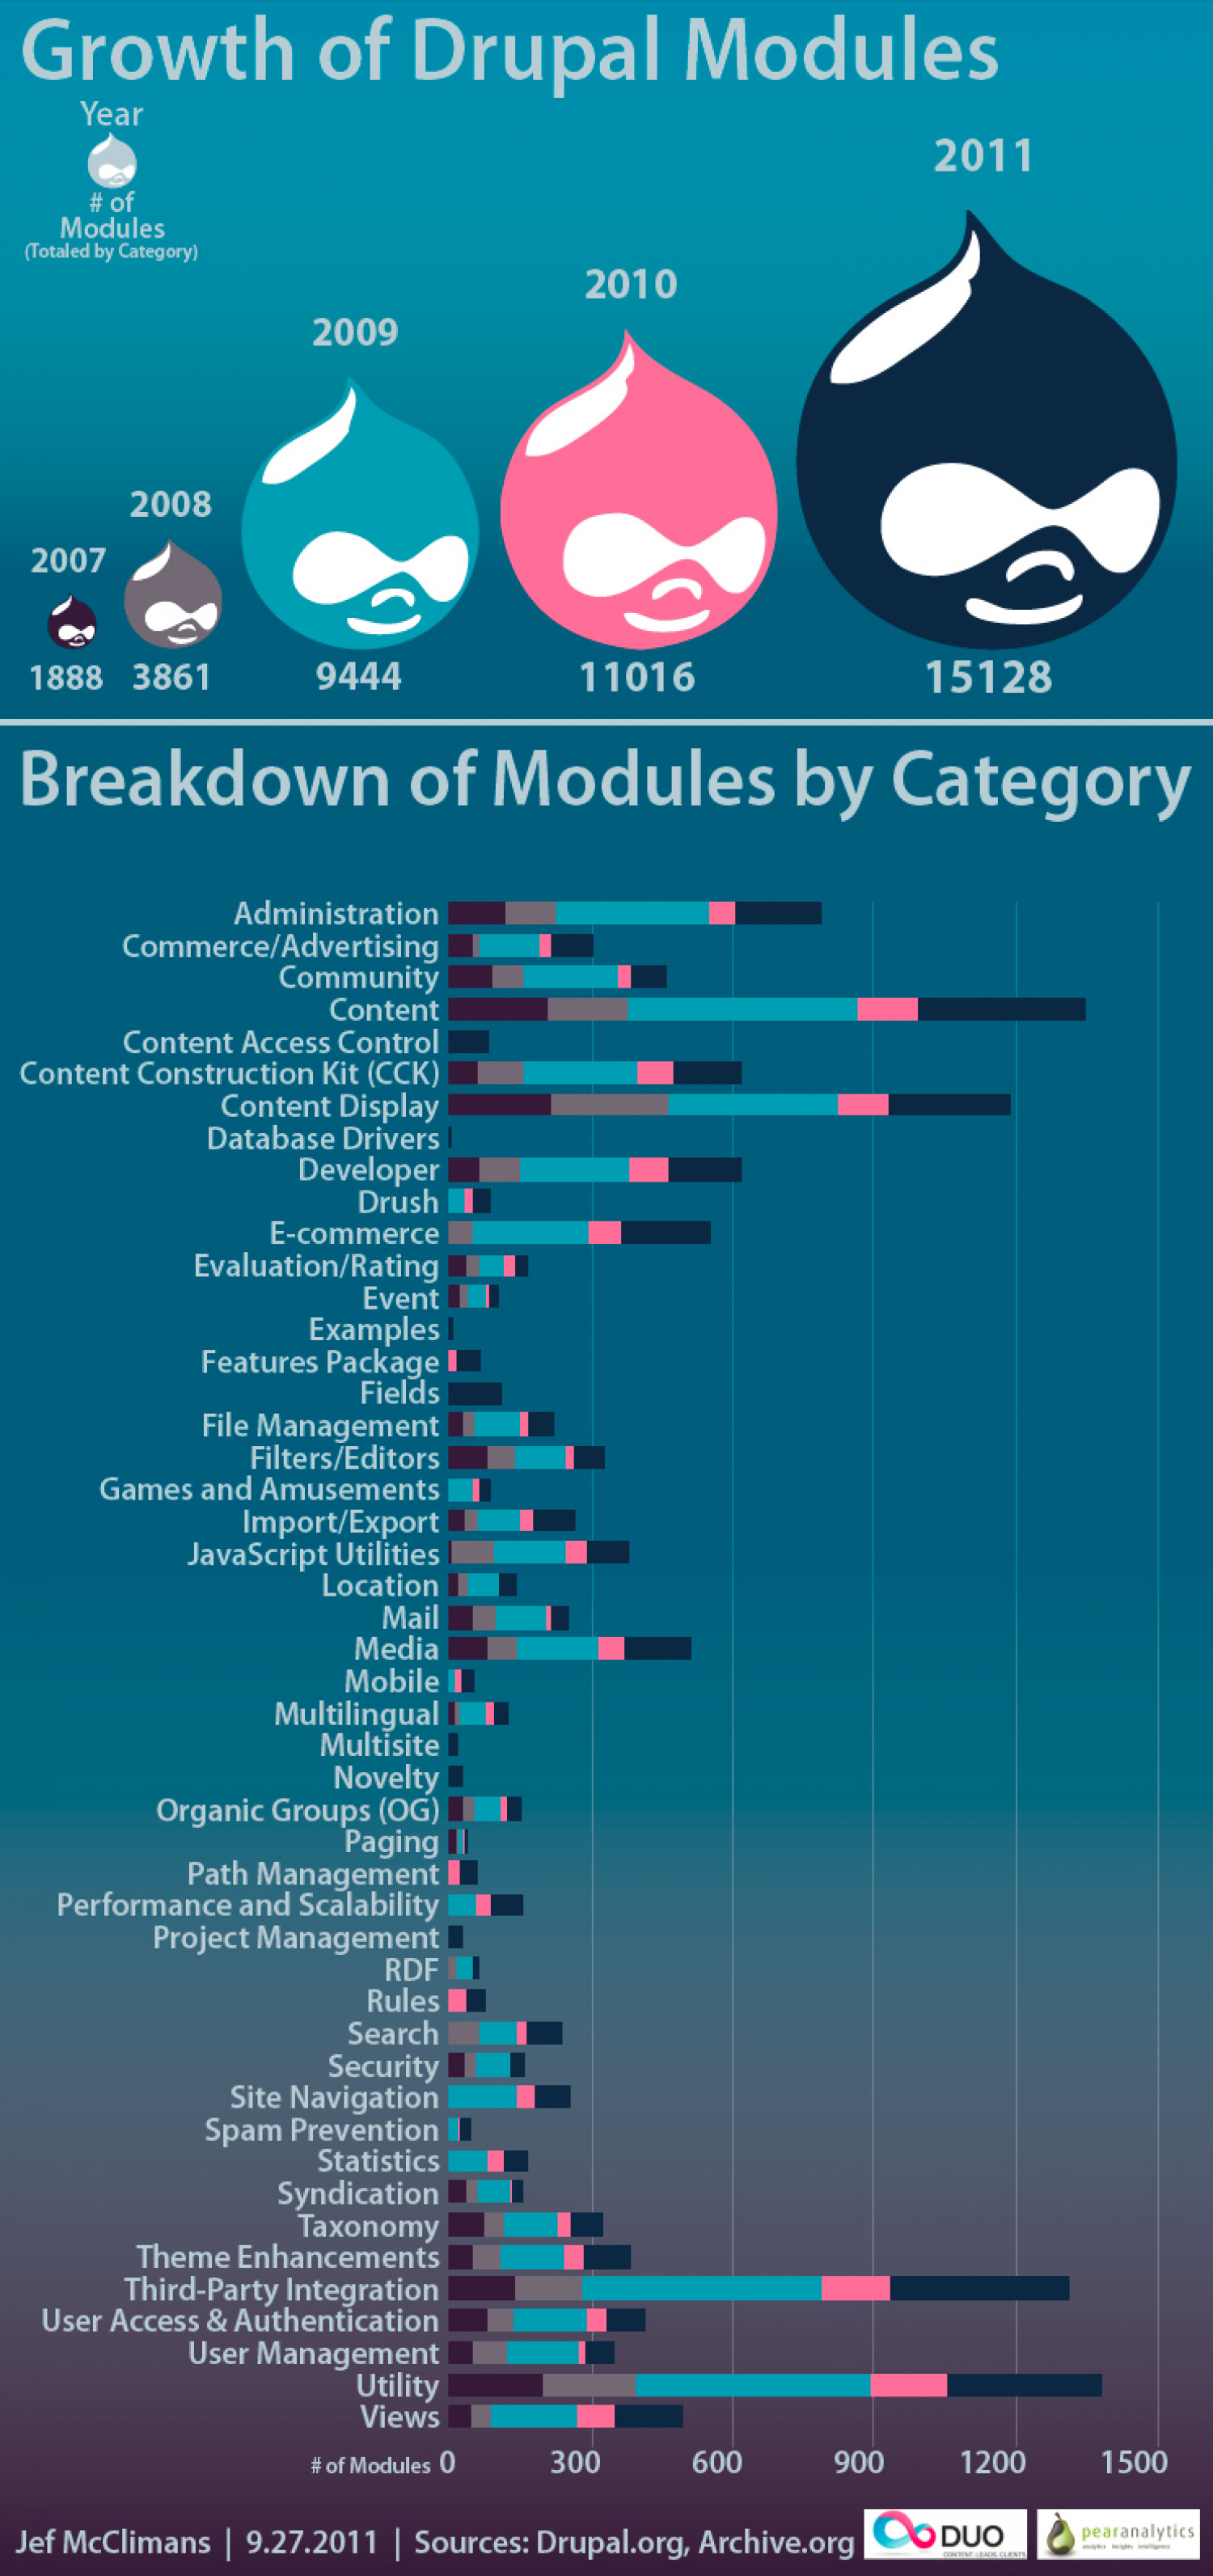 Growth of Drupal Modules Infographic